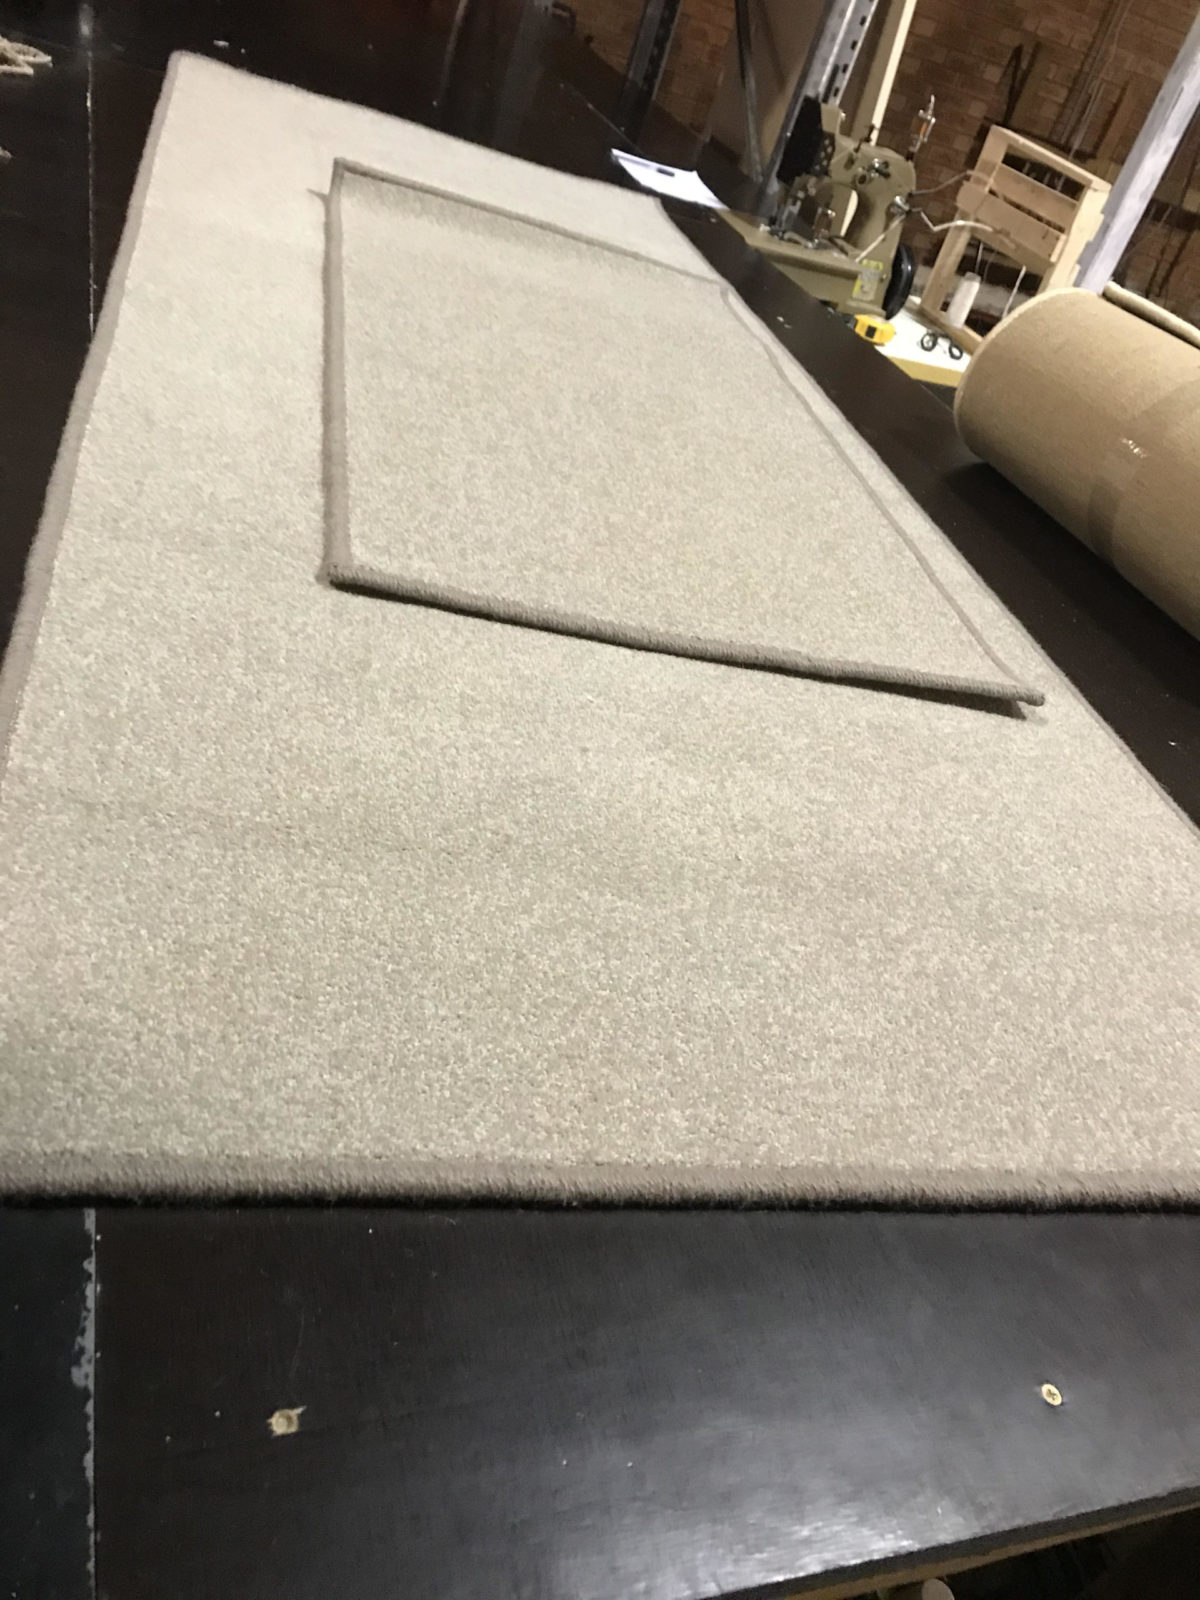 carpet overlocking binding is the built and designed for carpet overlocking services.